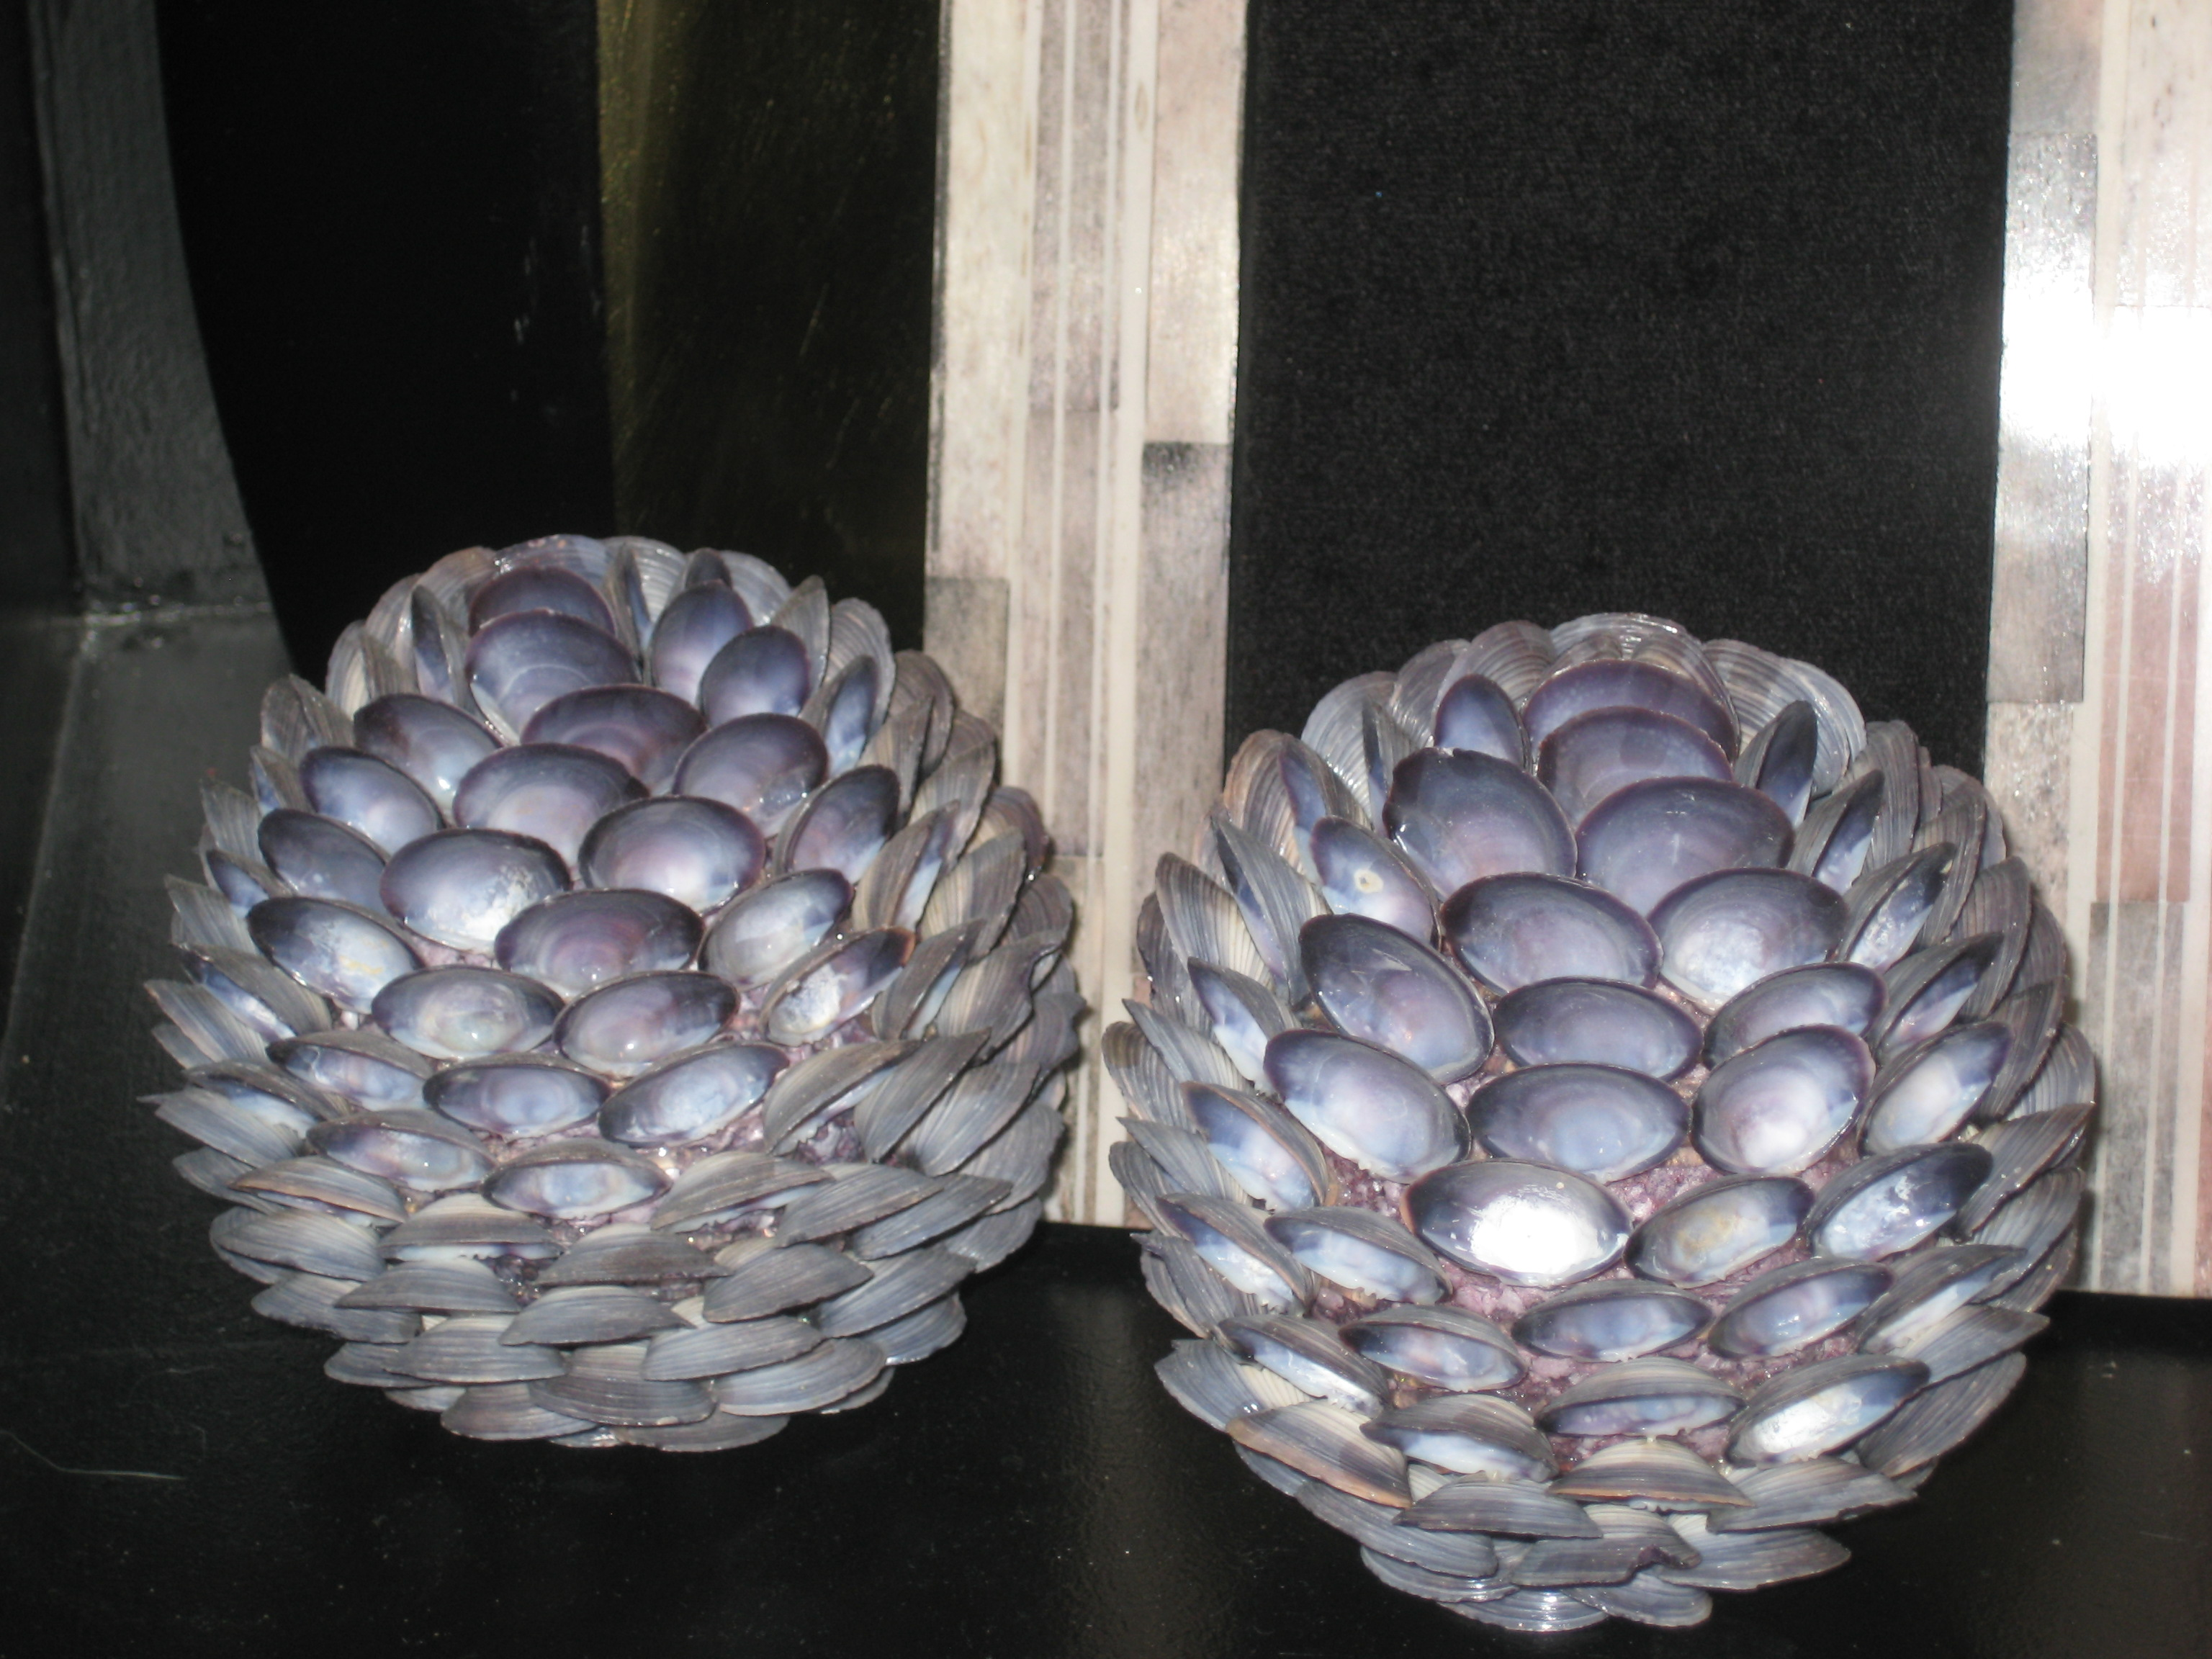 Charming Silver Decorative Orbs Made From Shells For Table Accessories Ideas